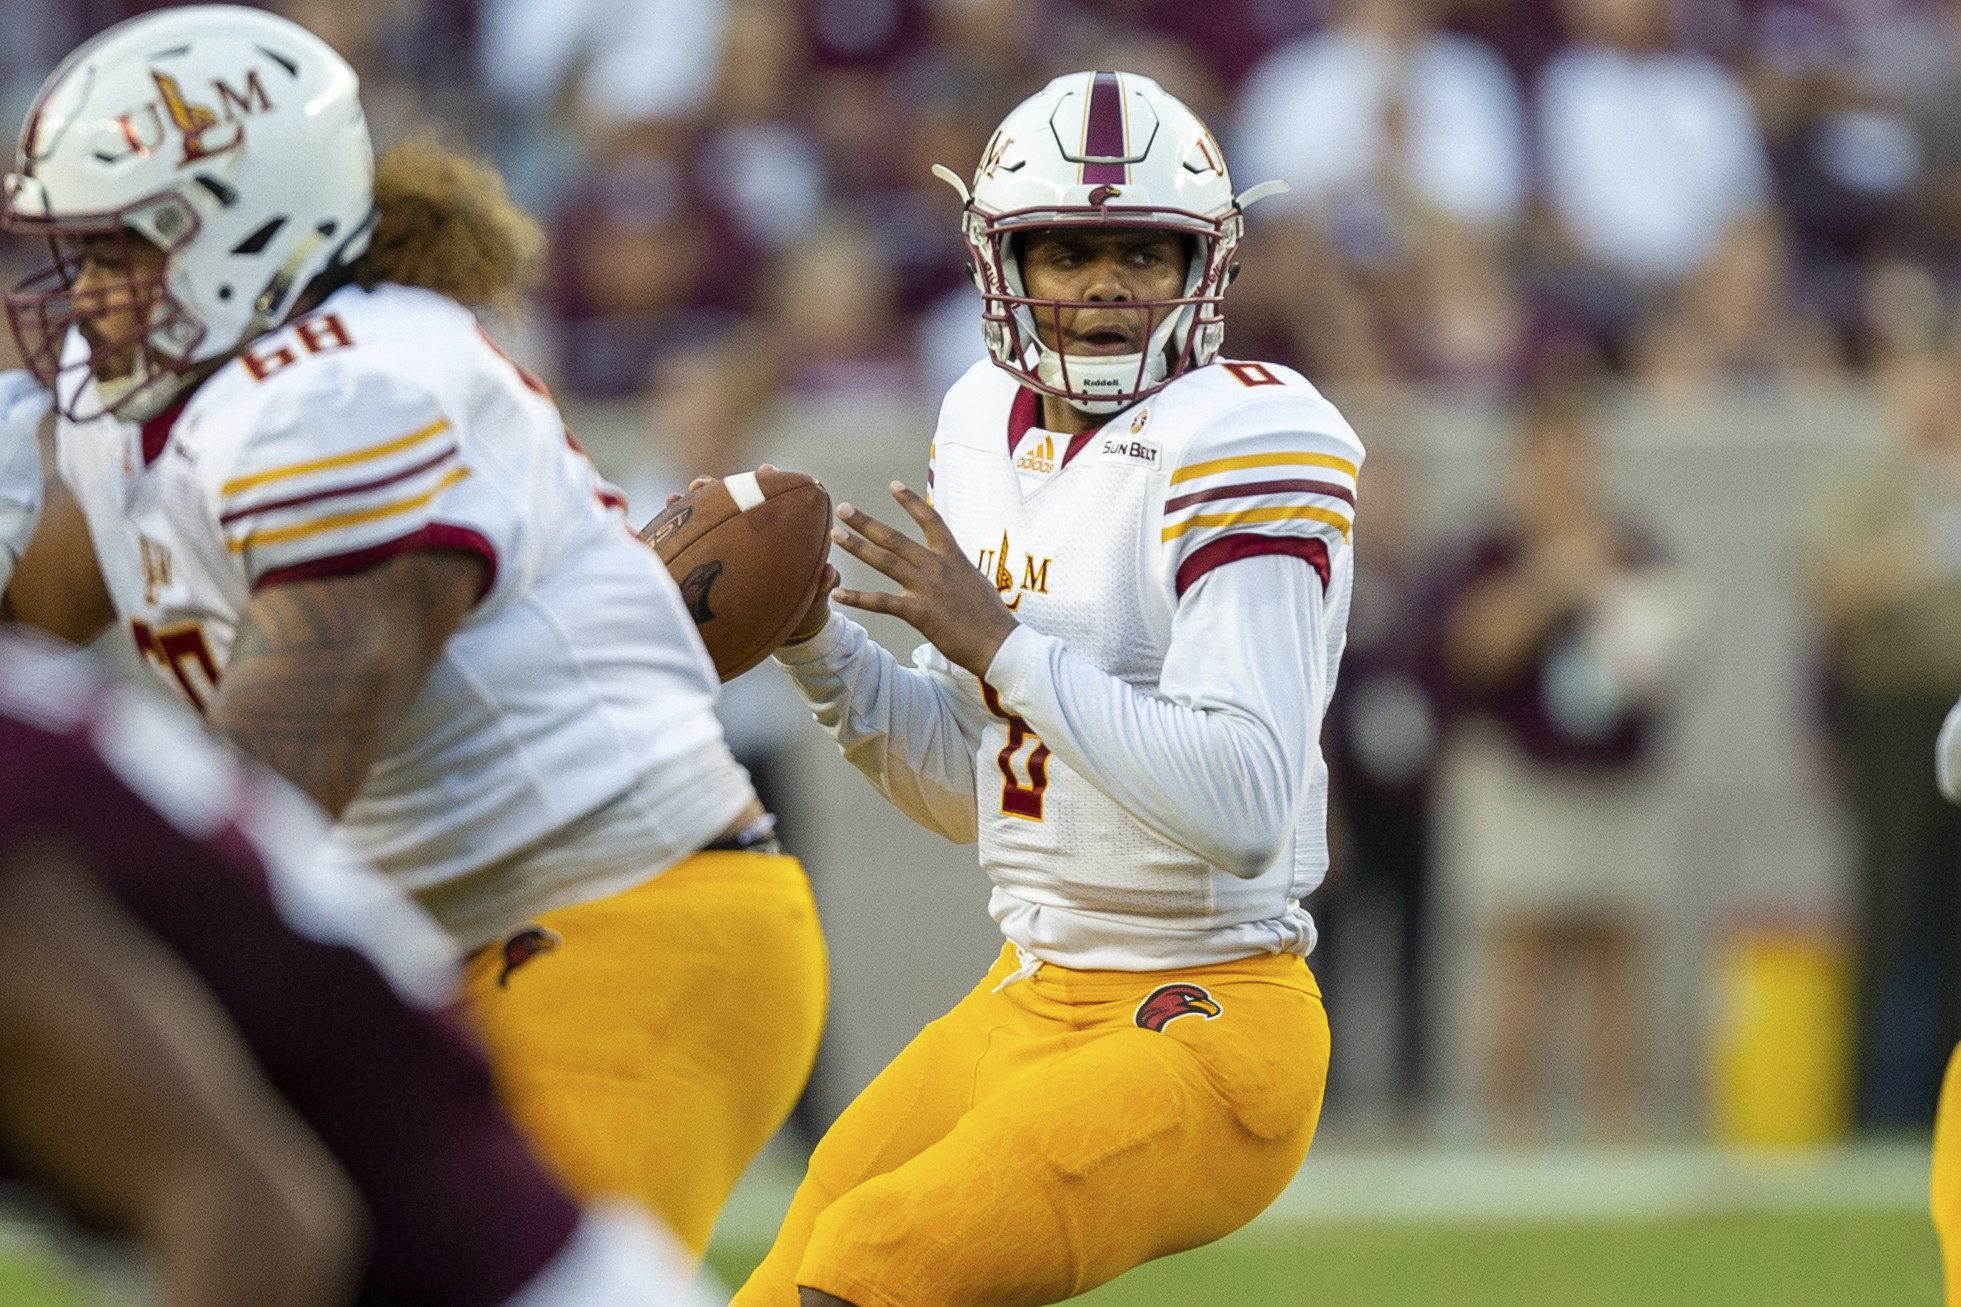 2019 College Football Rankings No 107 Ulm Pushes For Elusive Bowl Bid Baltimore Sun